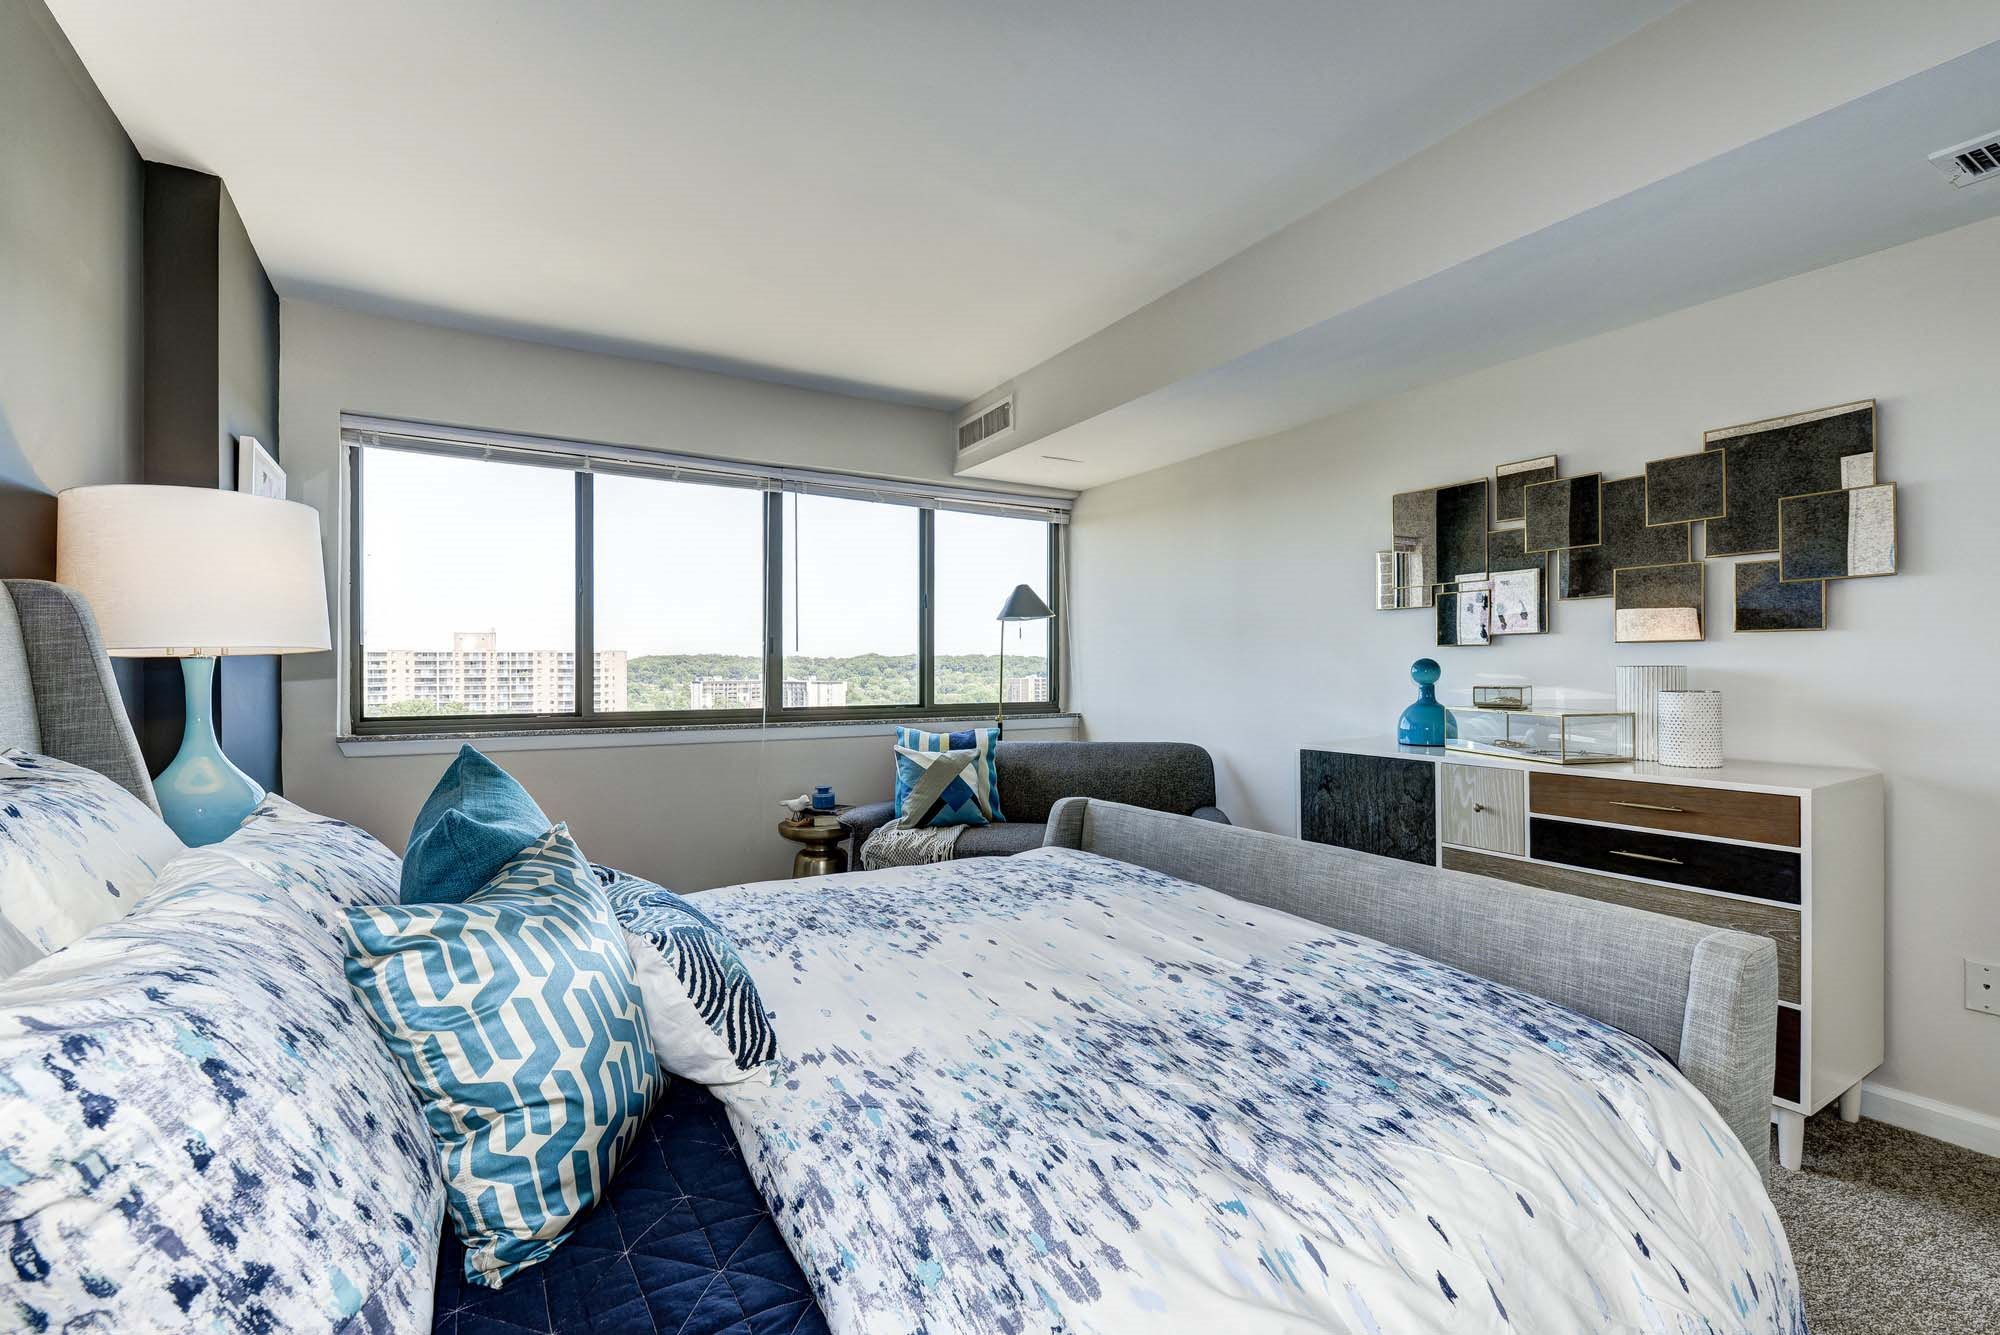 King-Sized Bedrooms at The Mark Apartments, Alexandria